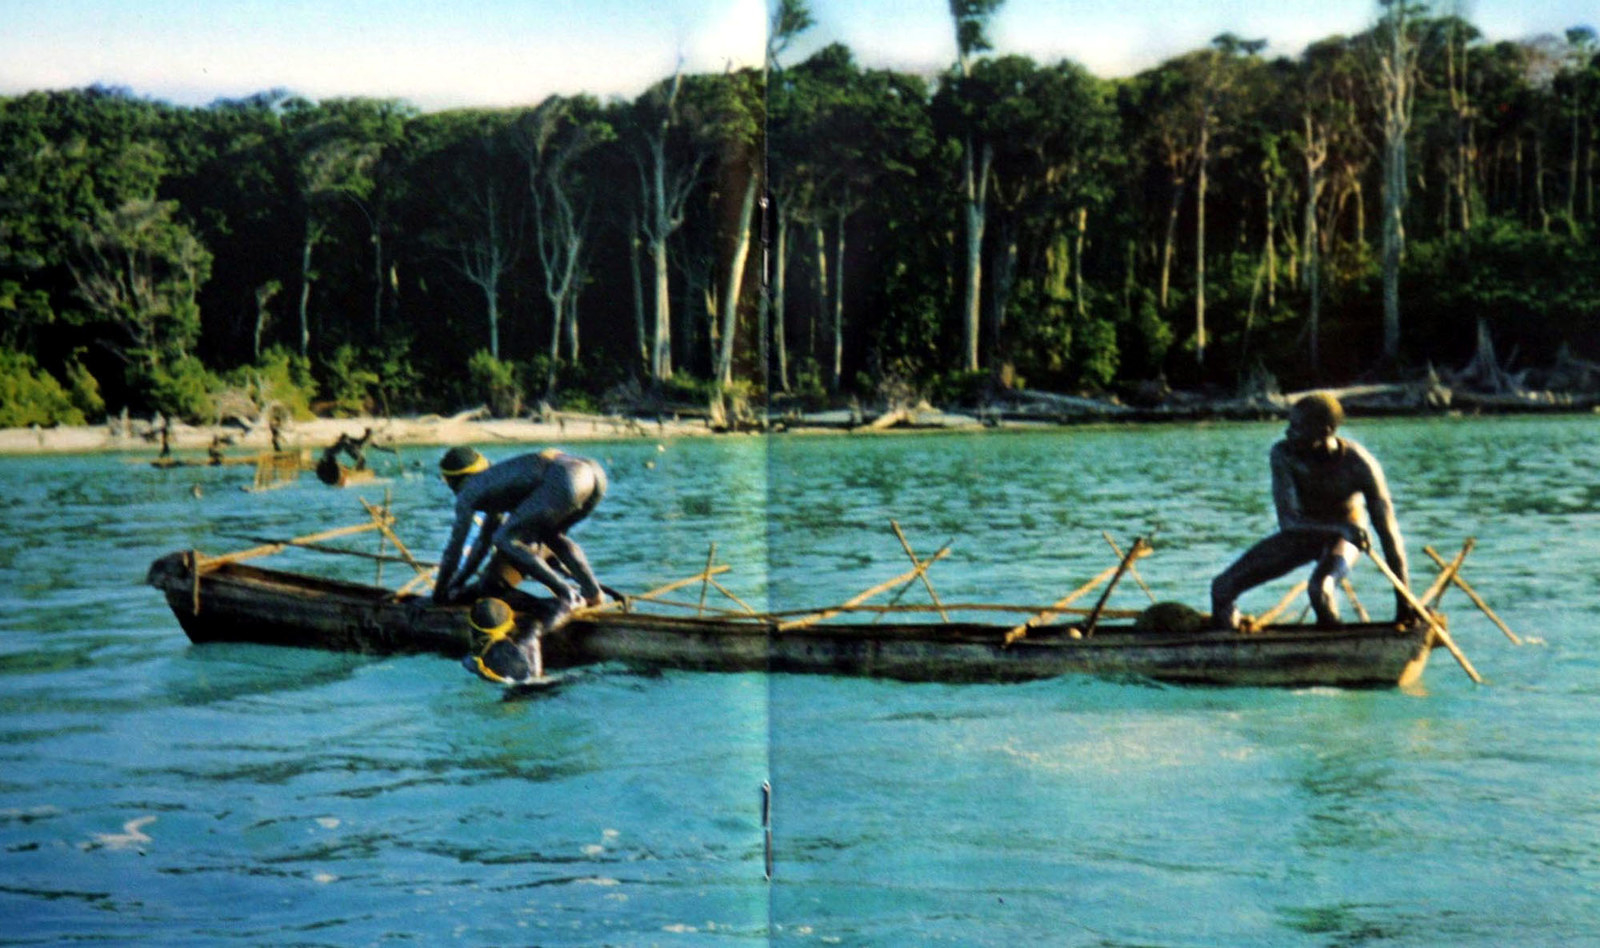 In this undated photo released by the Anthropological Survey of India Sentinelese tribe men row their canoe in Indias Andaman and Nicobar archipelago.